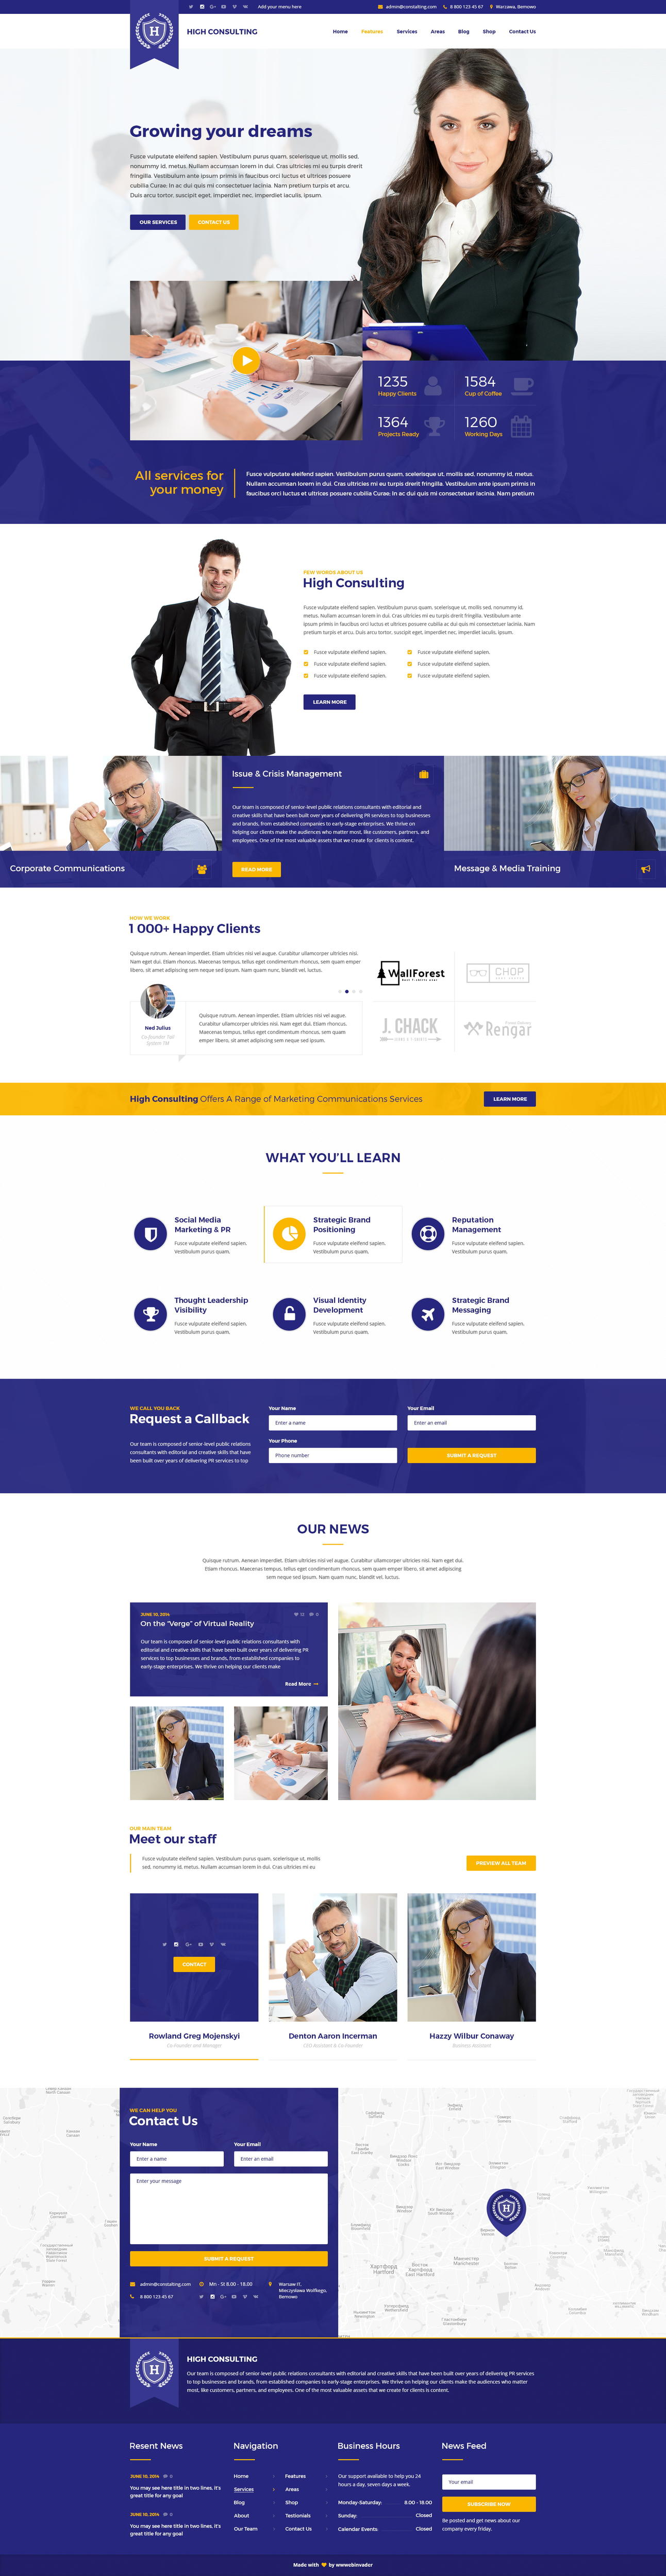 Premium Professional Full Website Design or Redesign (PSD) by wwwebinvader - 99824